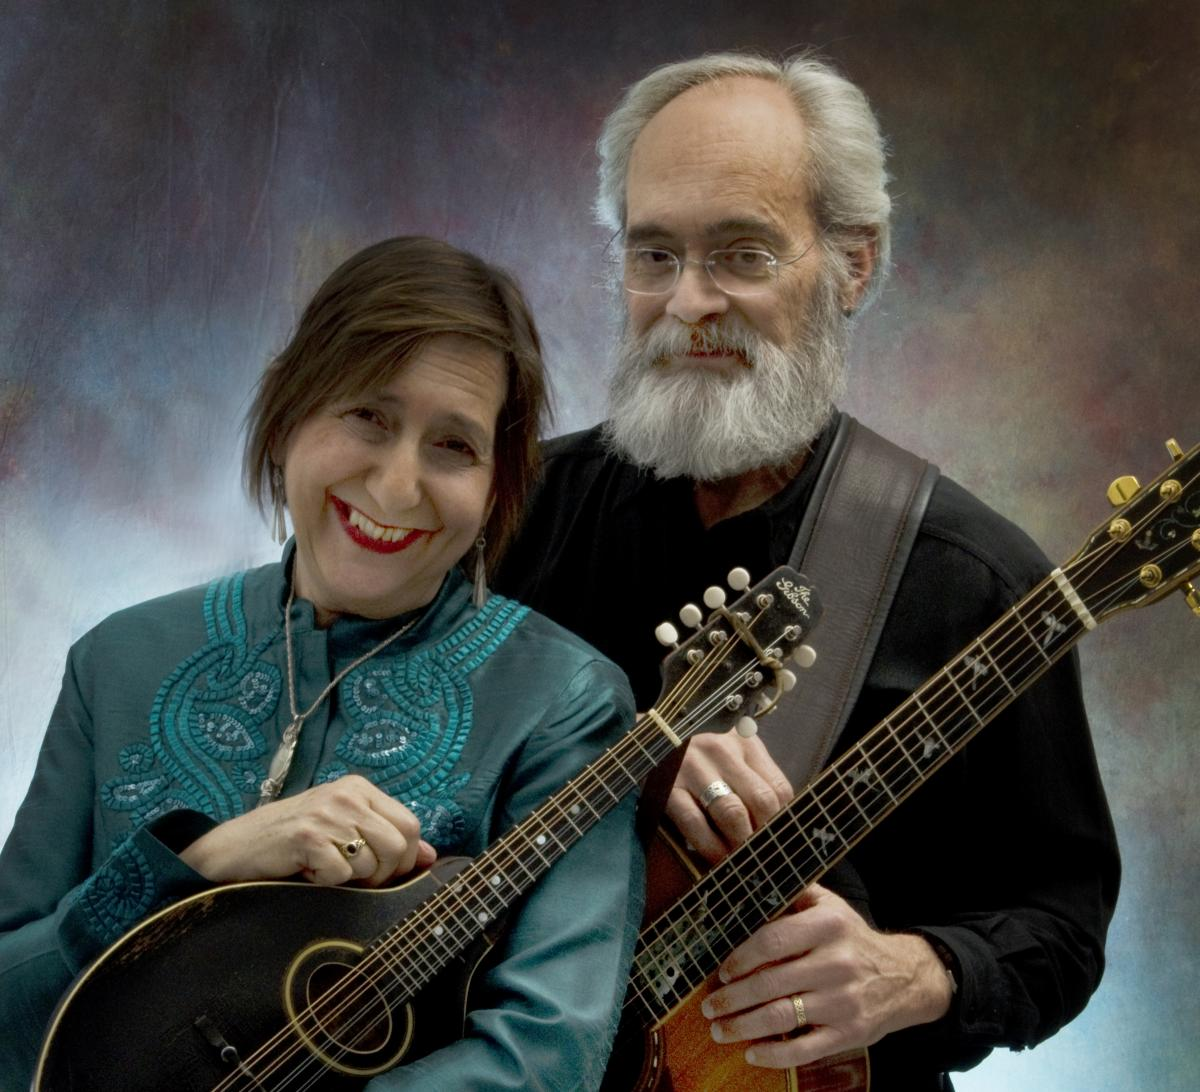 A woman and man standing together holding guitars